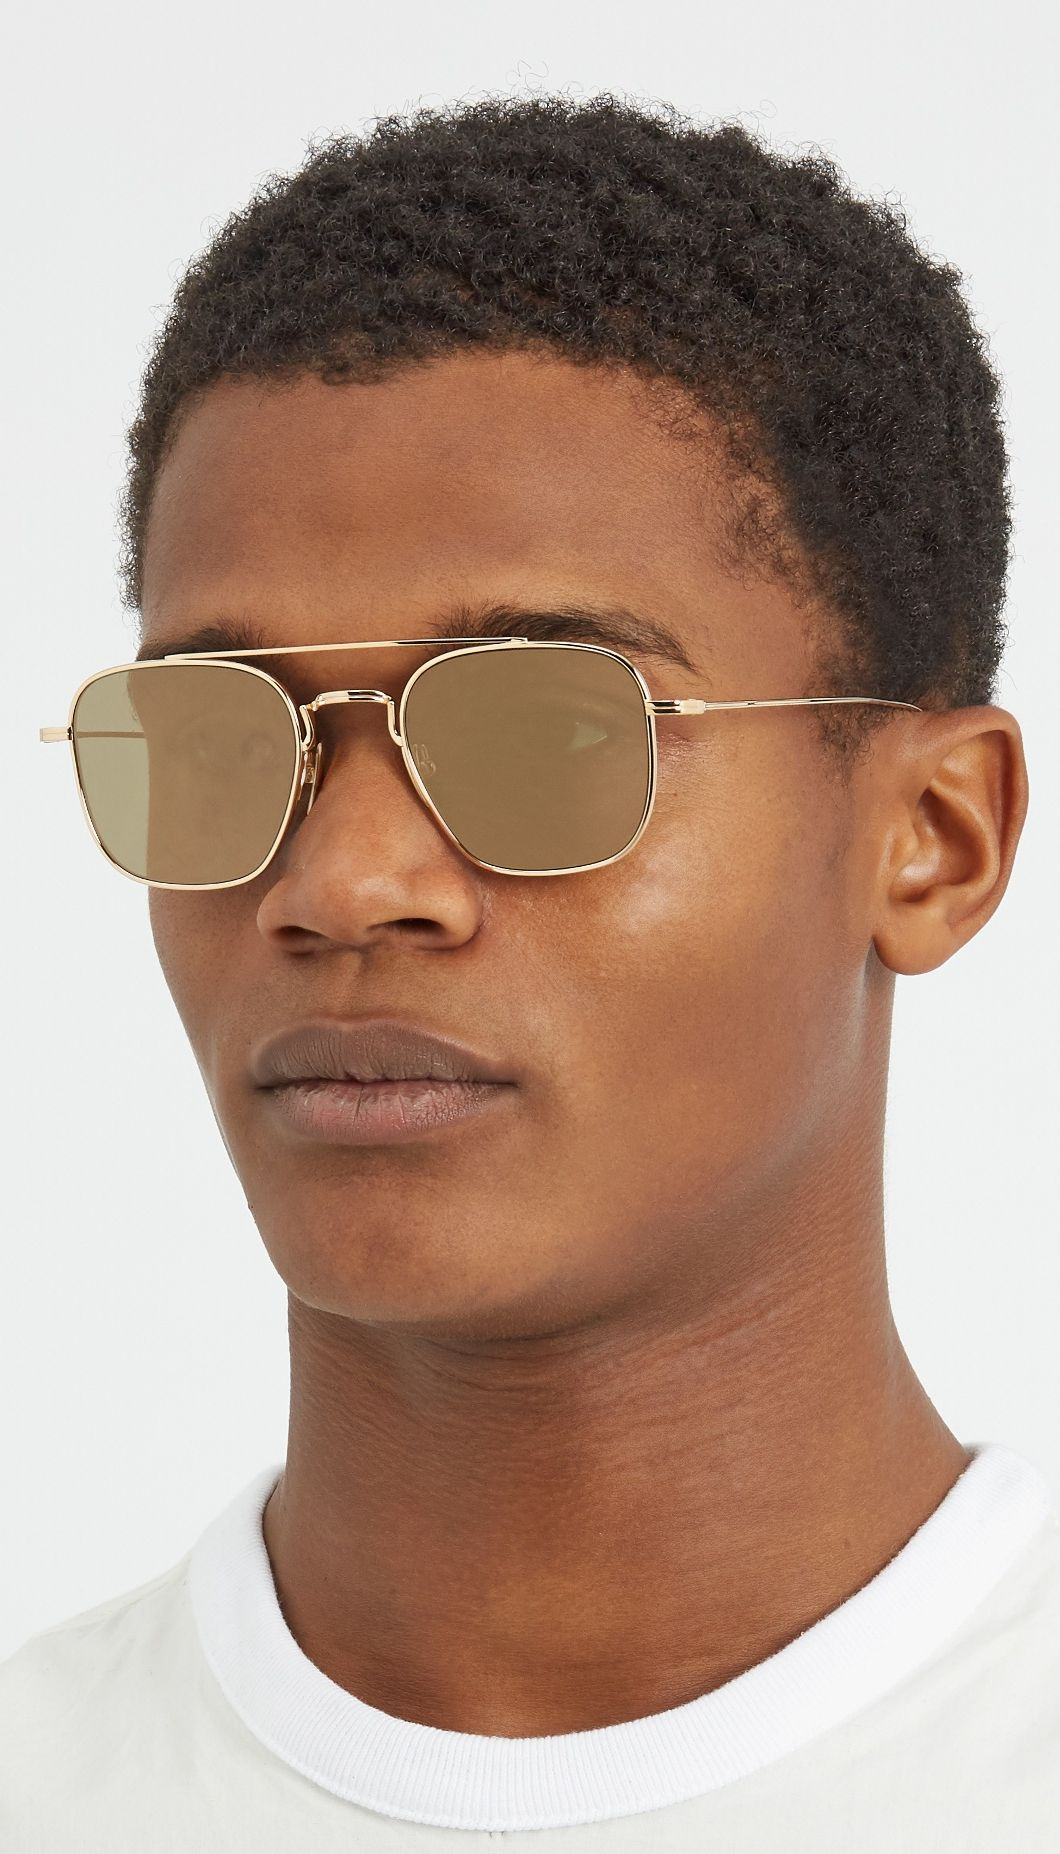 e82d91273b30 Thom Browne s gold-tone mirrored sunglasses will lend a smart finish to  your daytime appearance